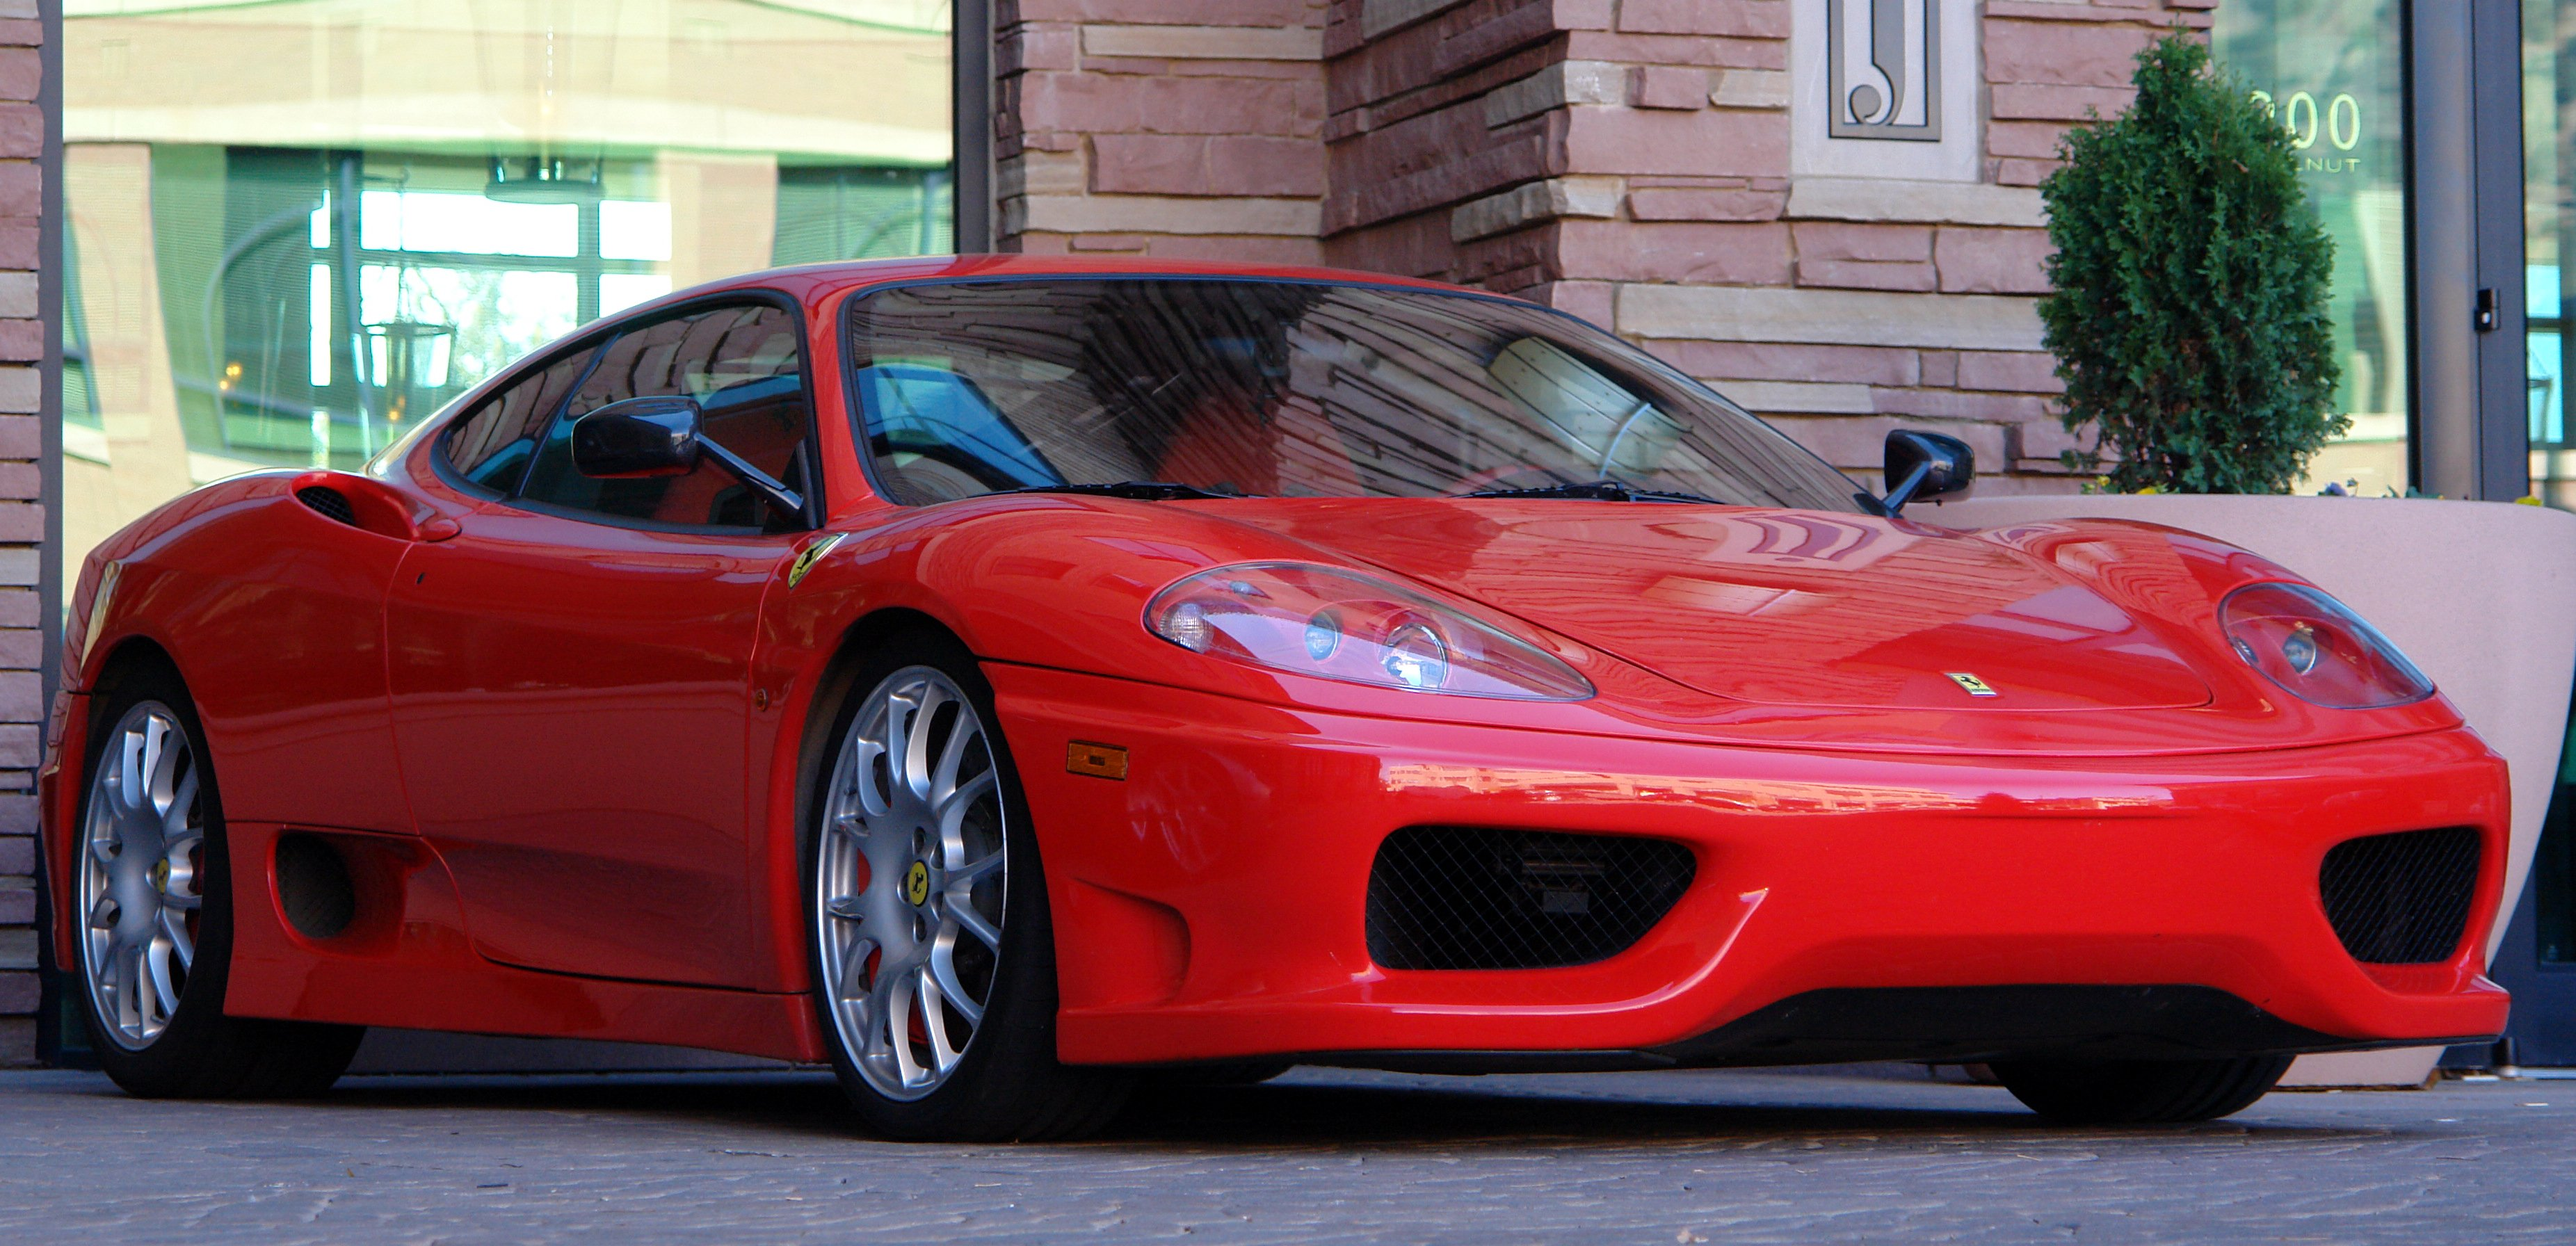 Ferrari 360 Modena Colorado World Cars Free Download Image Of